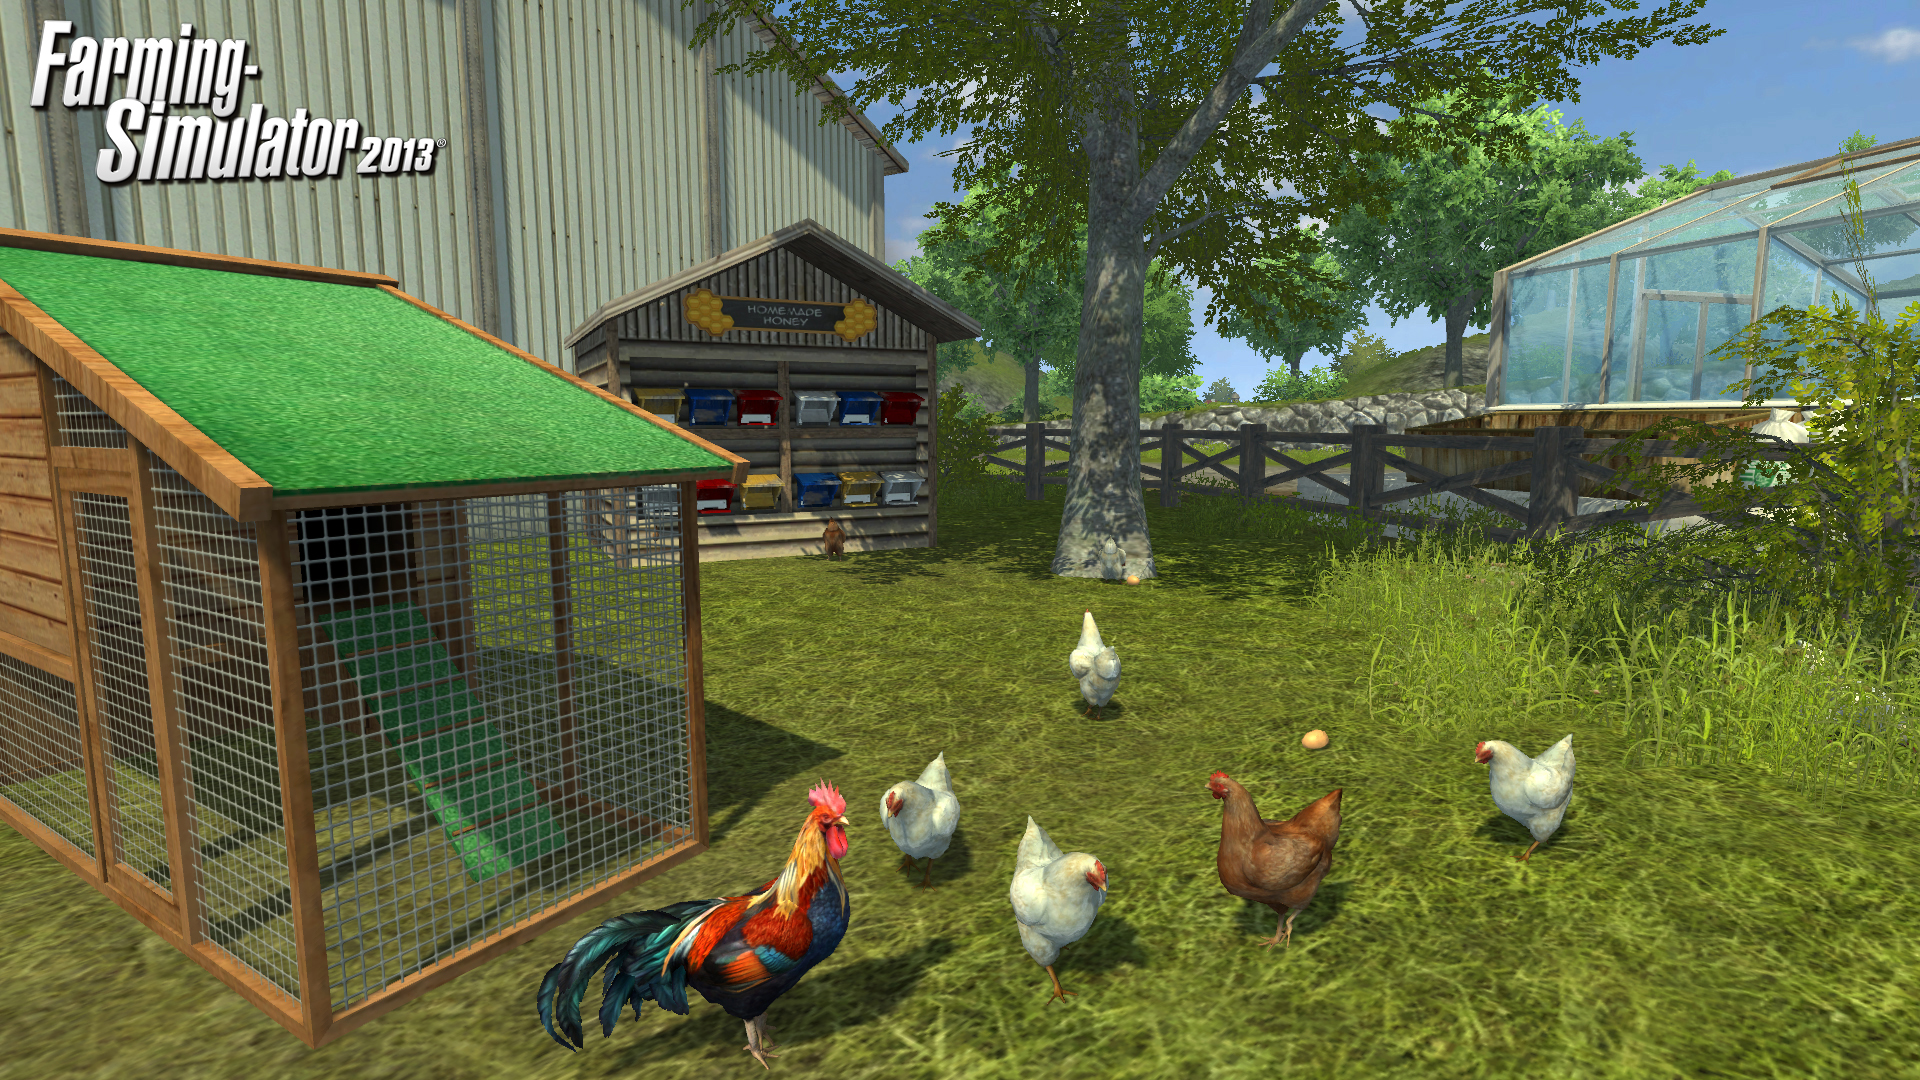 farming simulator 2013 over 2 million official mods downloaded